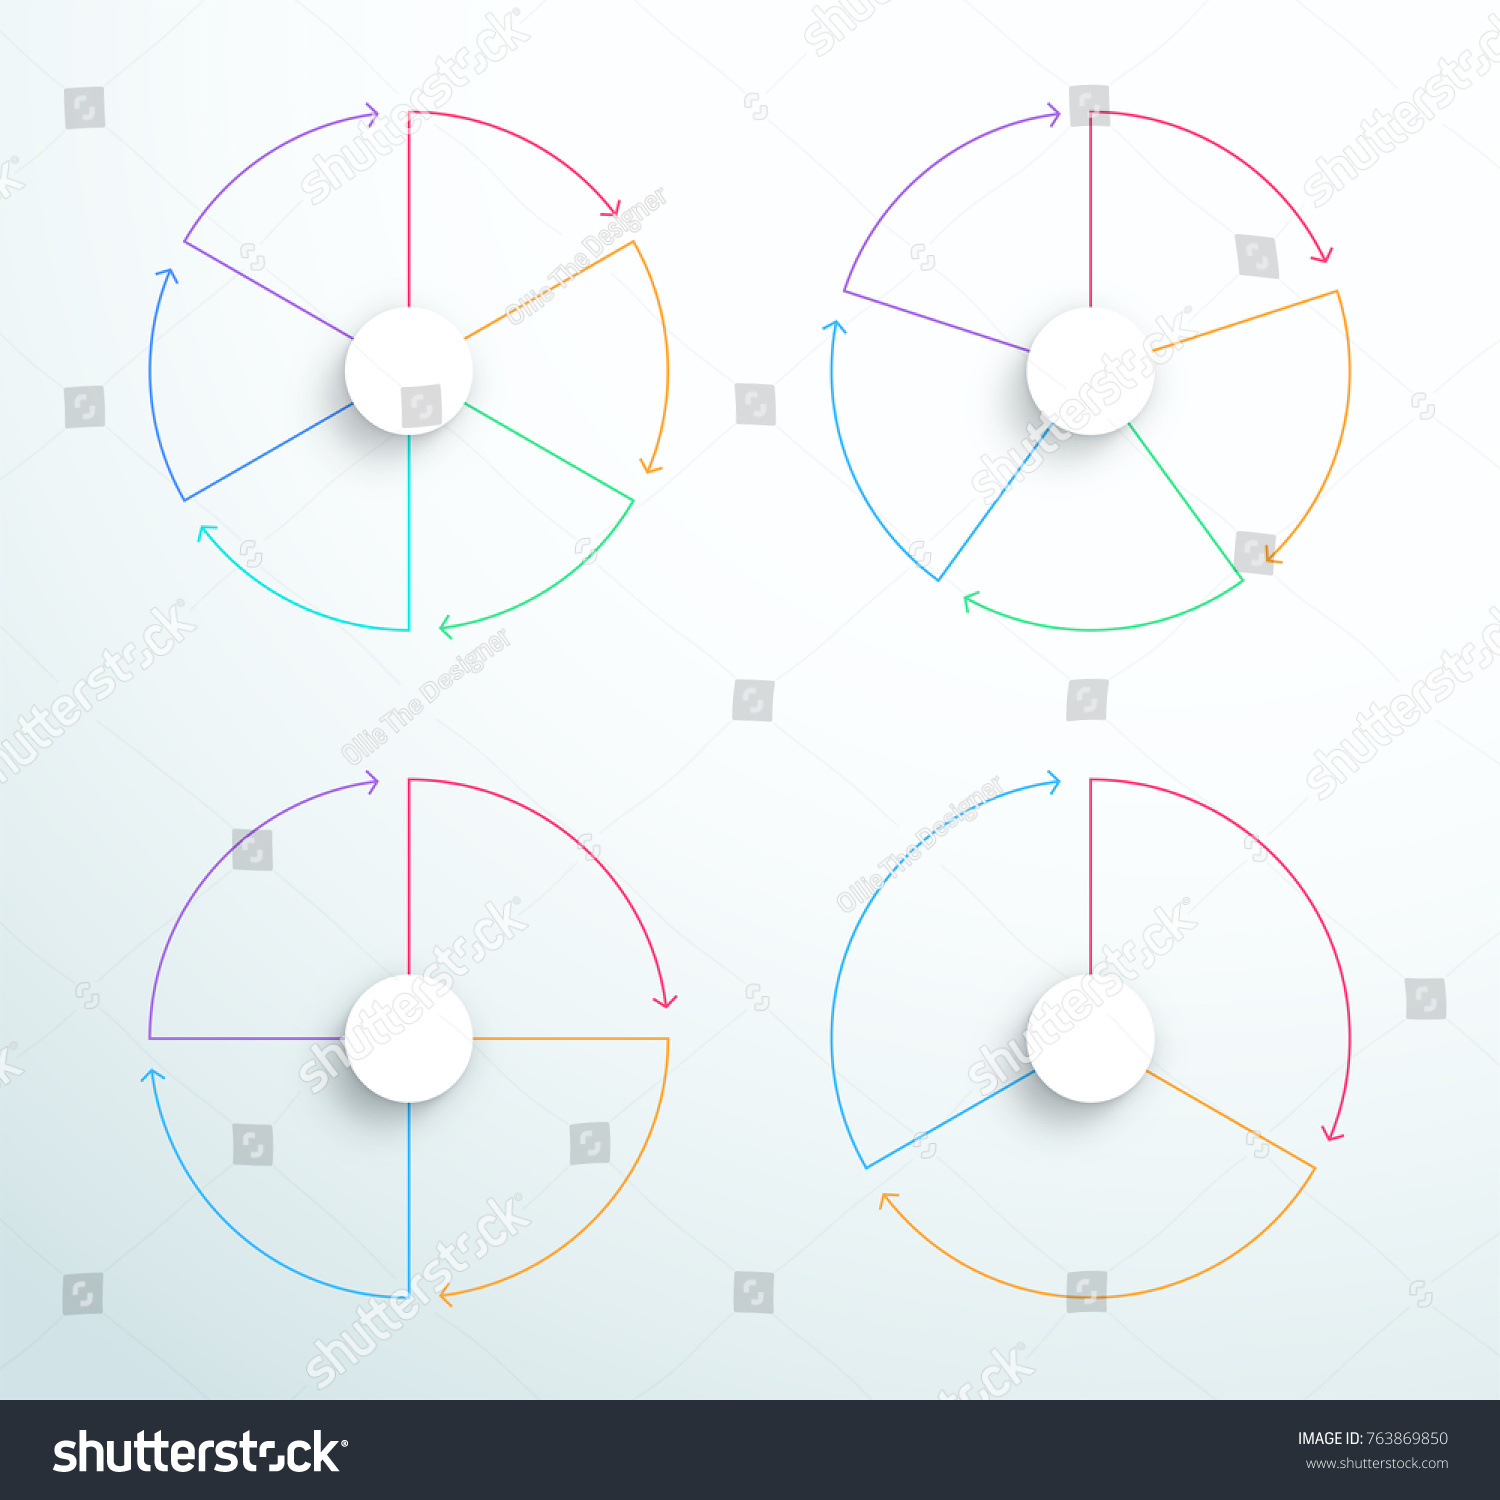 Infographic simple rotating business cycle diagrams stock vector infographic simple rotating business cycle diagrams stock vector 763869850 shutterstock ccuart Image collections